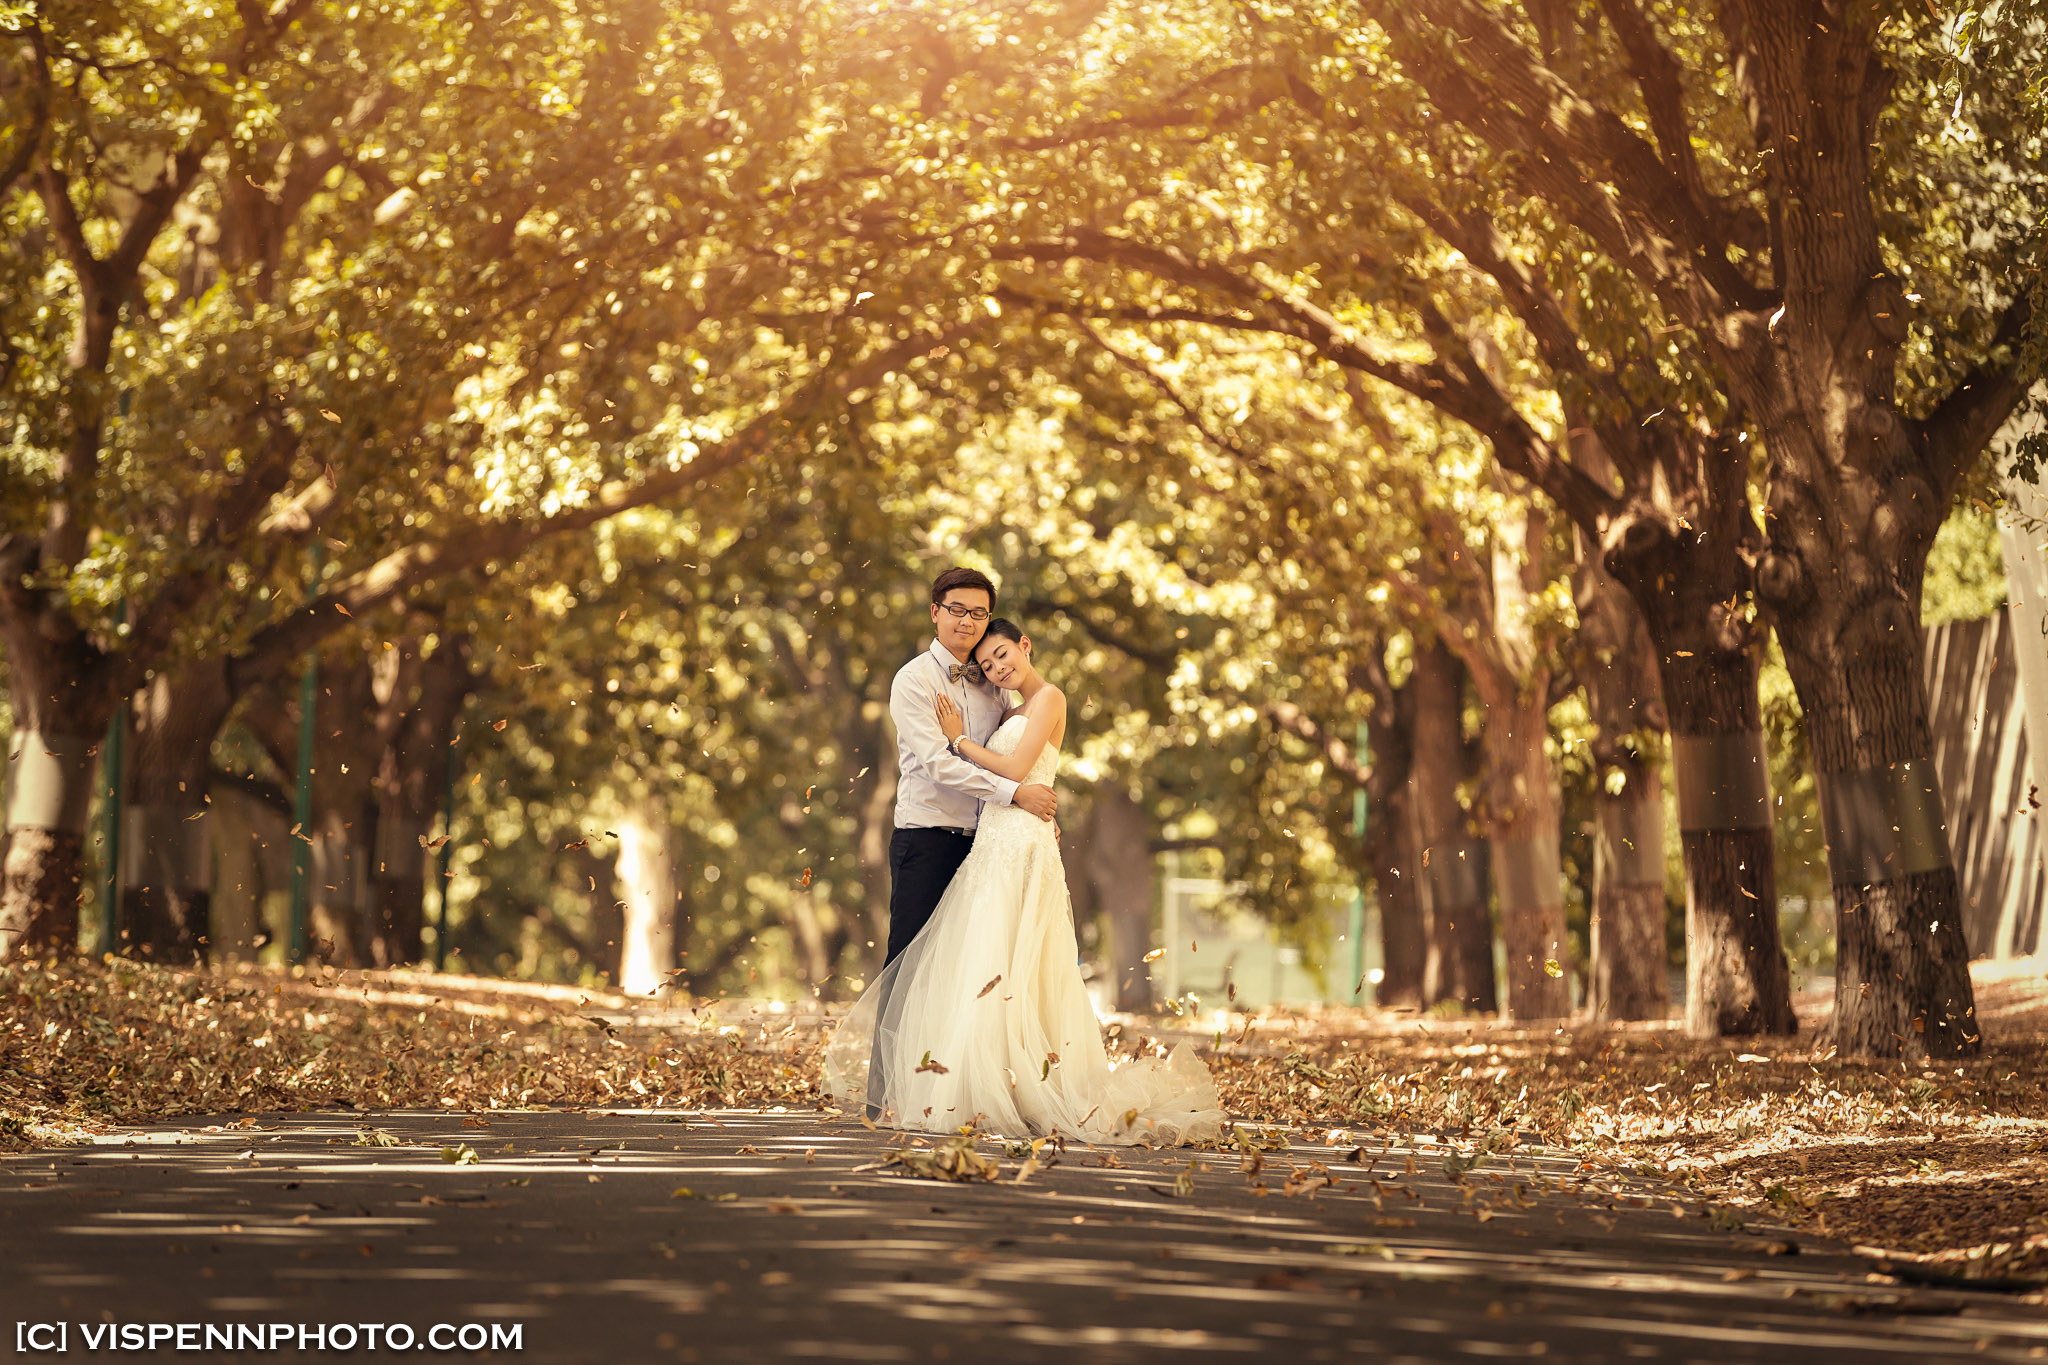 PRE WEDDING Photography Melbourne KarenCai 2560 1